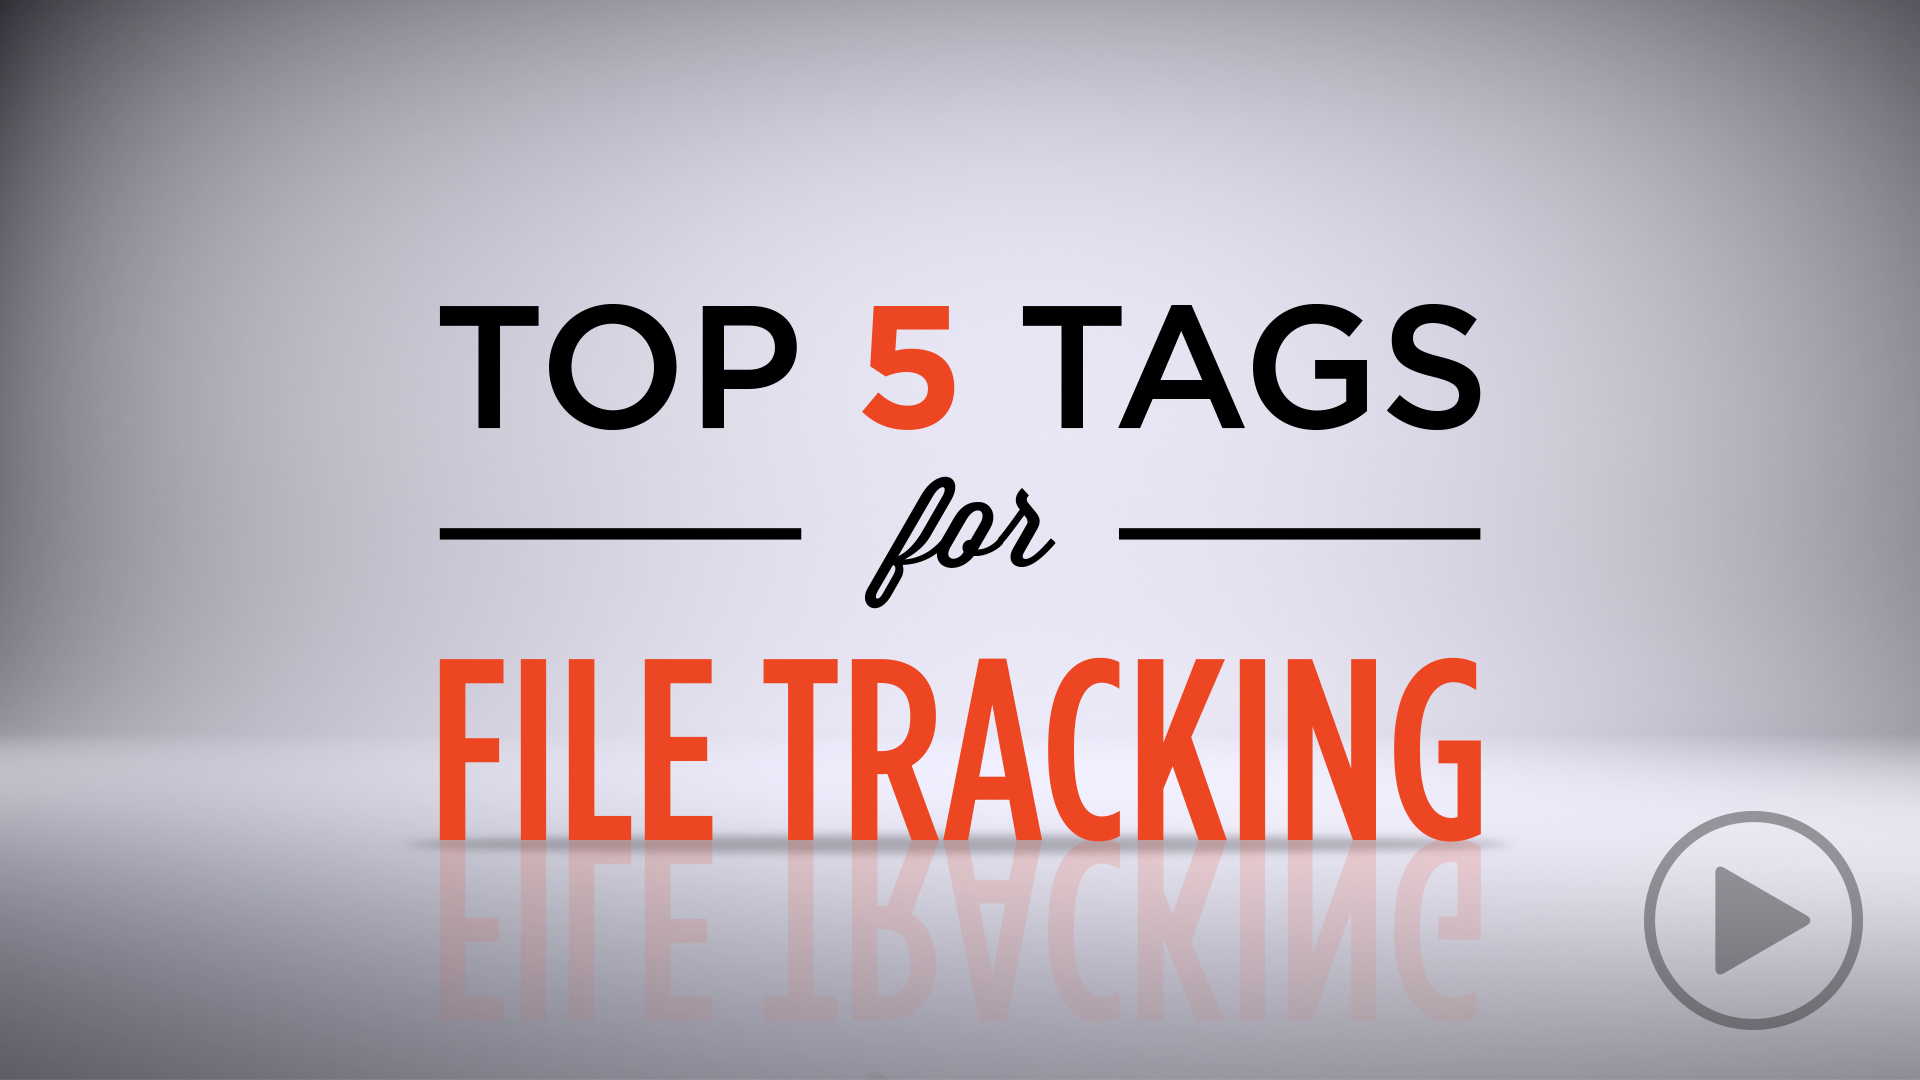 top-5-tags-for-file-tracking.jpg